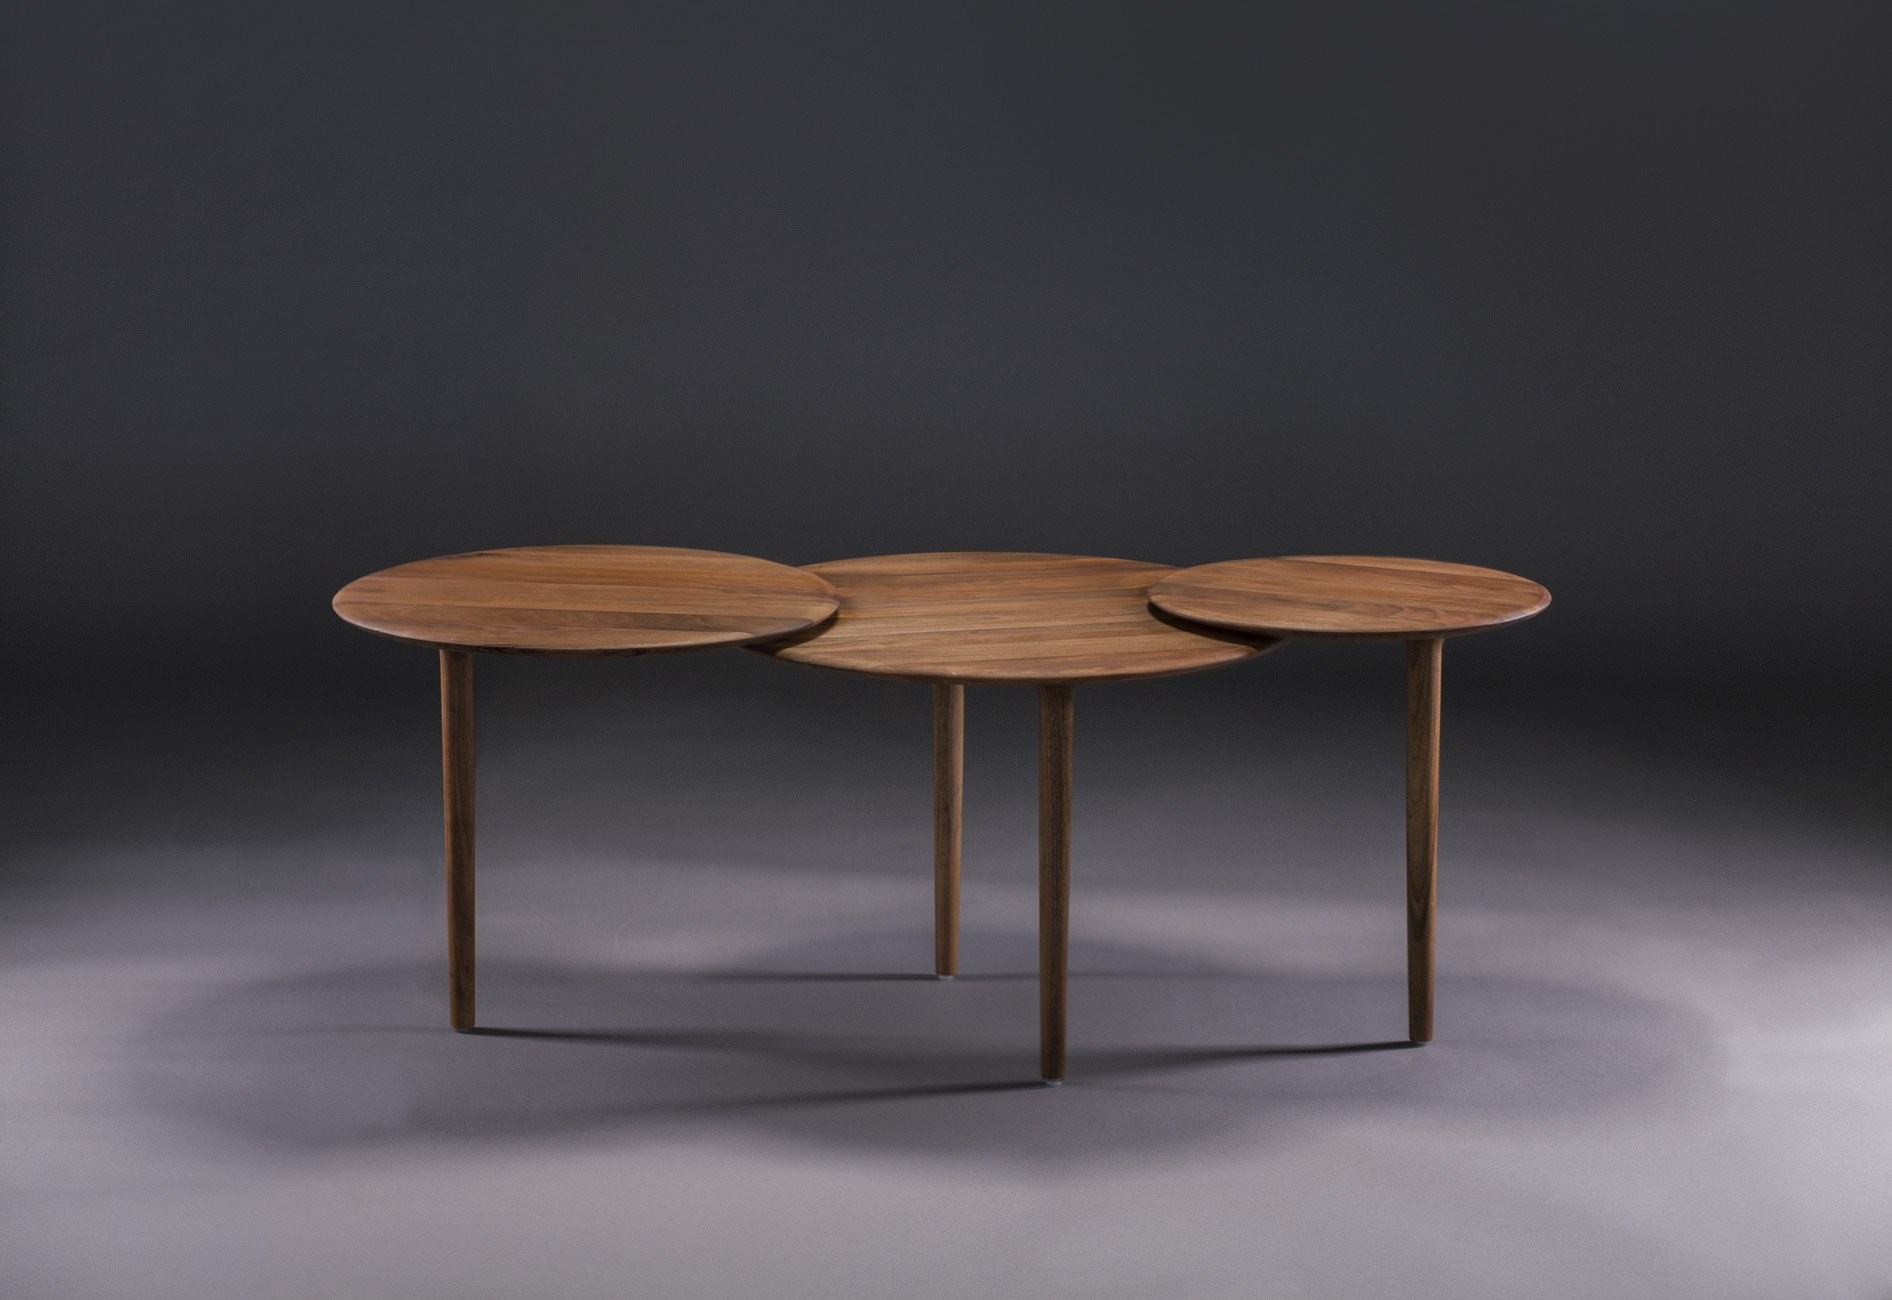 Wooden Coffee Table Triple By Artisan Design Rudjer Novak Mikulic Marija Ruzic